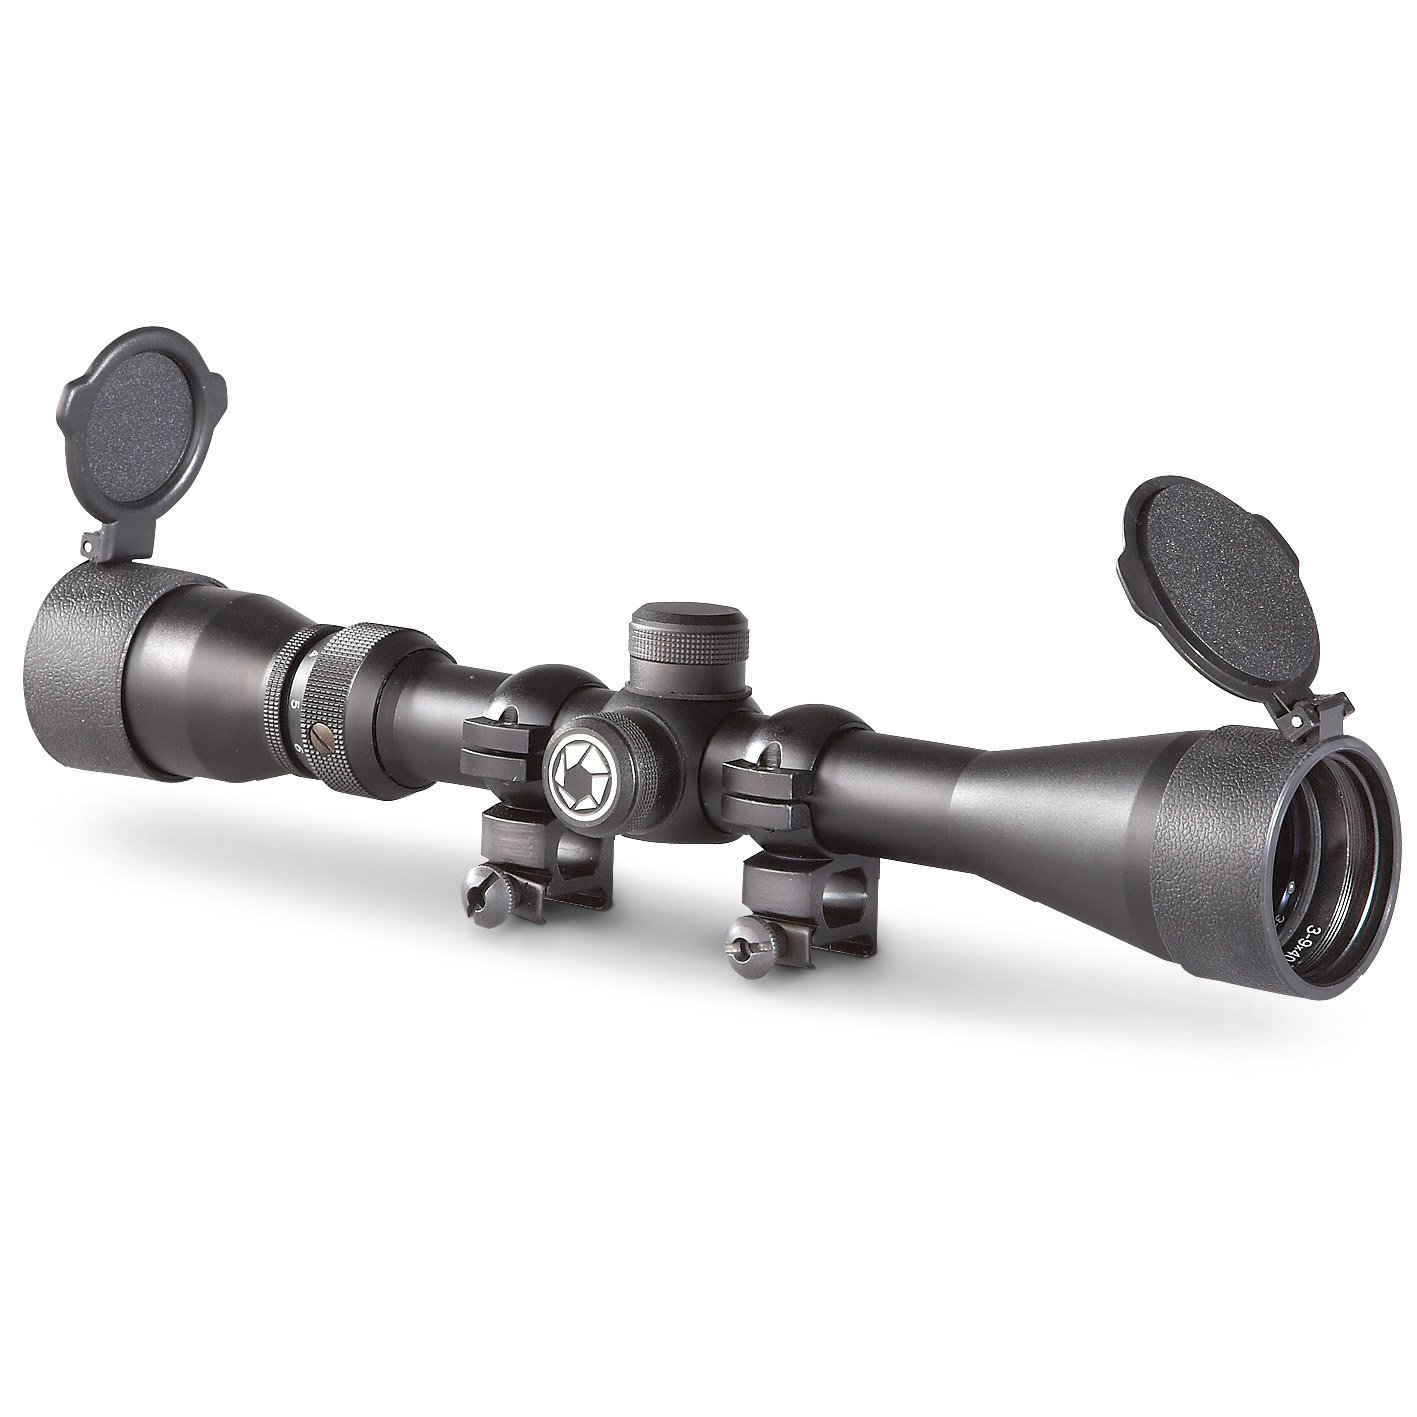 BARSKA, 3-9x40mm, P4, Tactical Rifle Scope